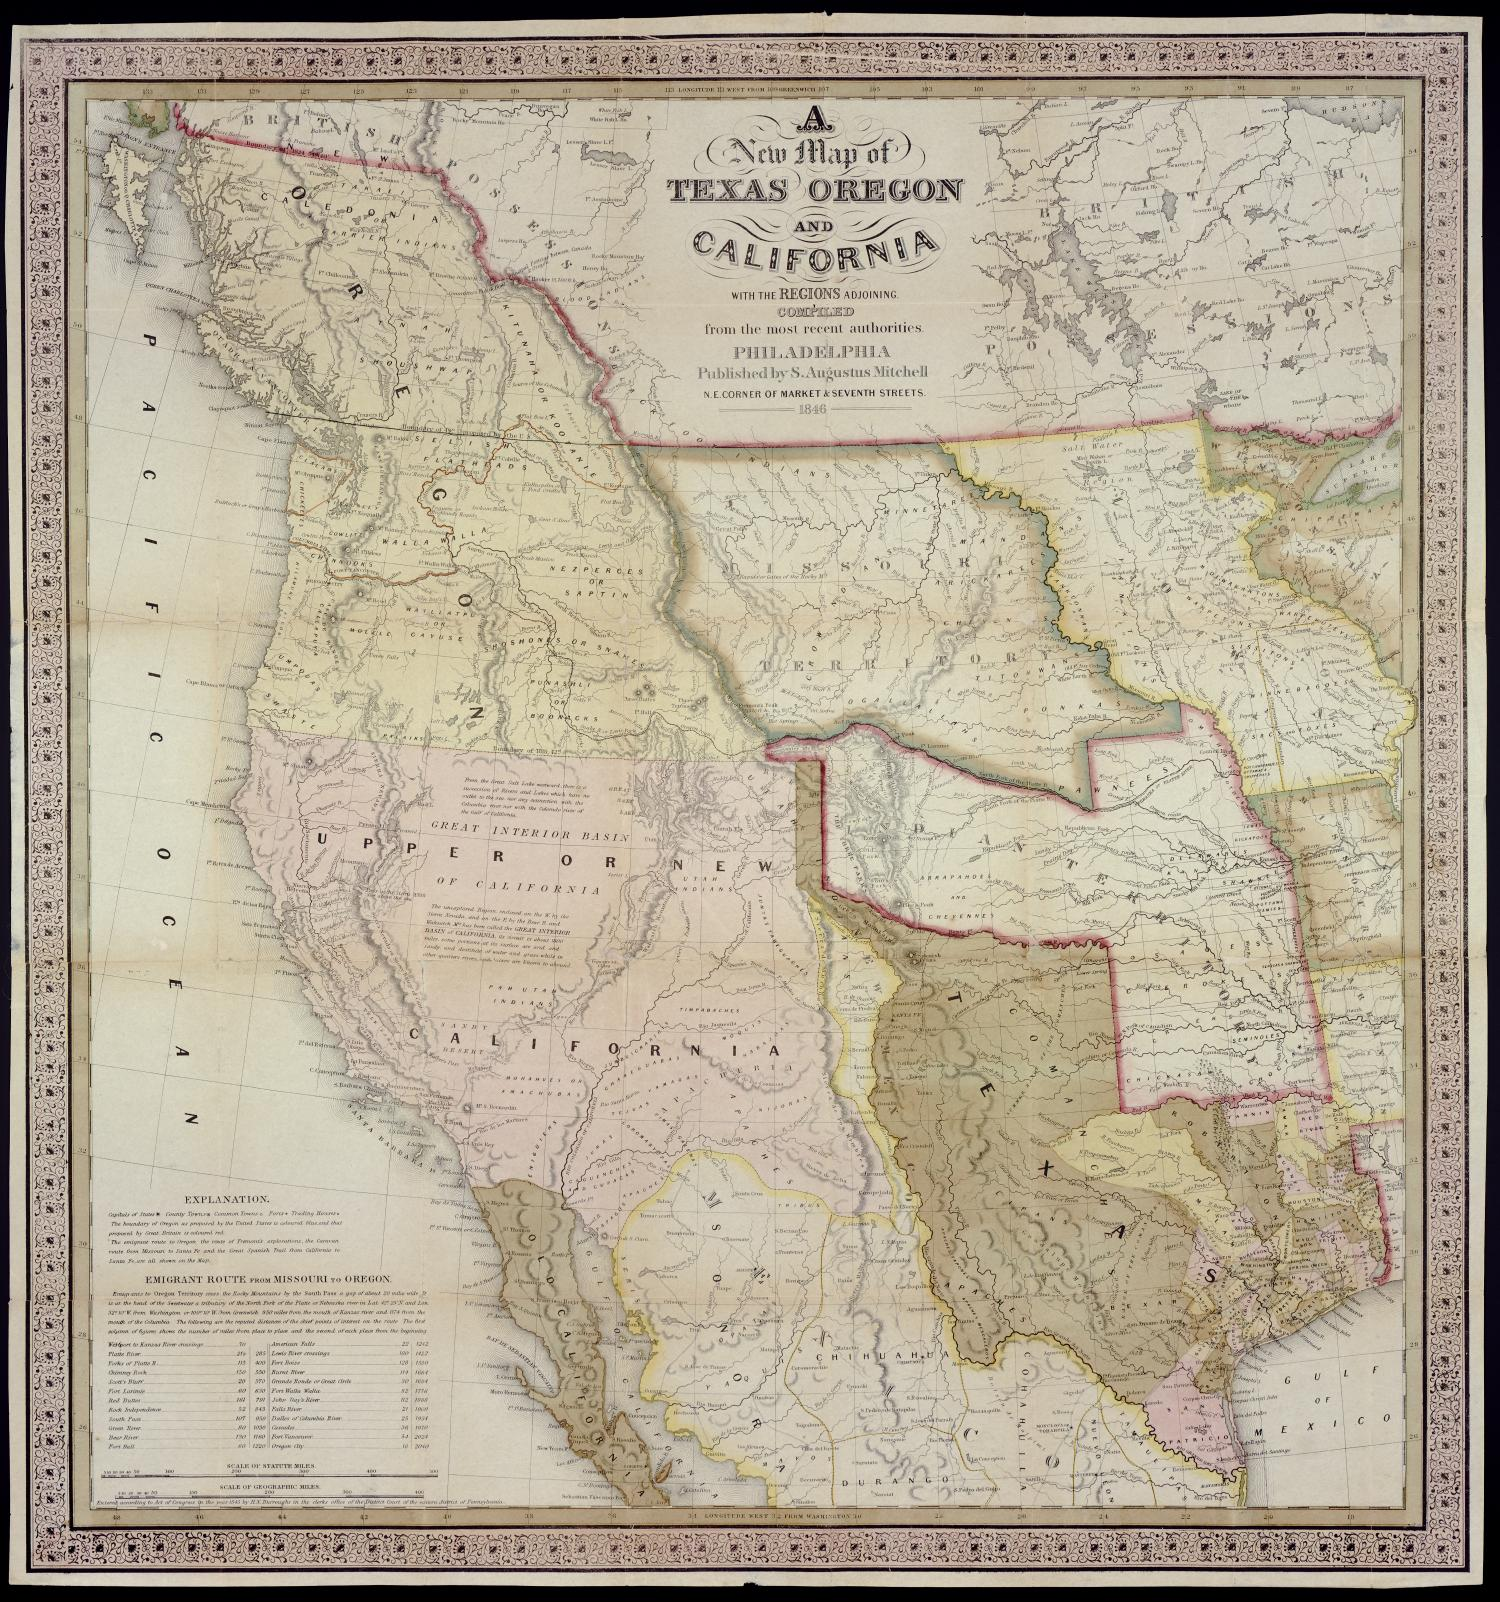 A New Map Of Texas Oregon And California With The Regions Adjoining